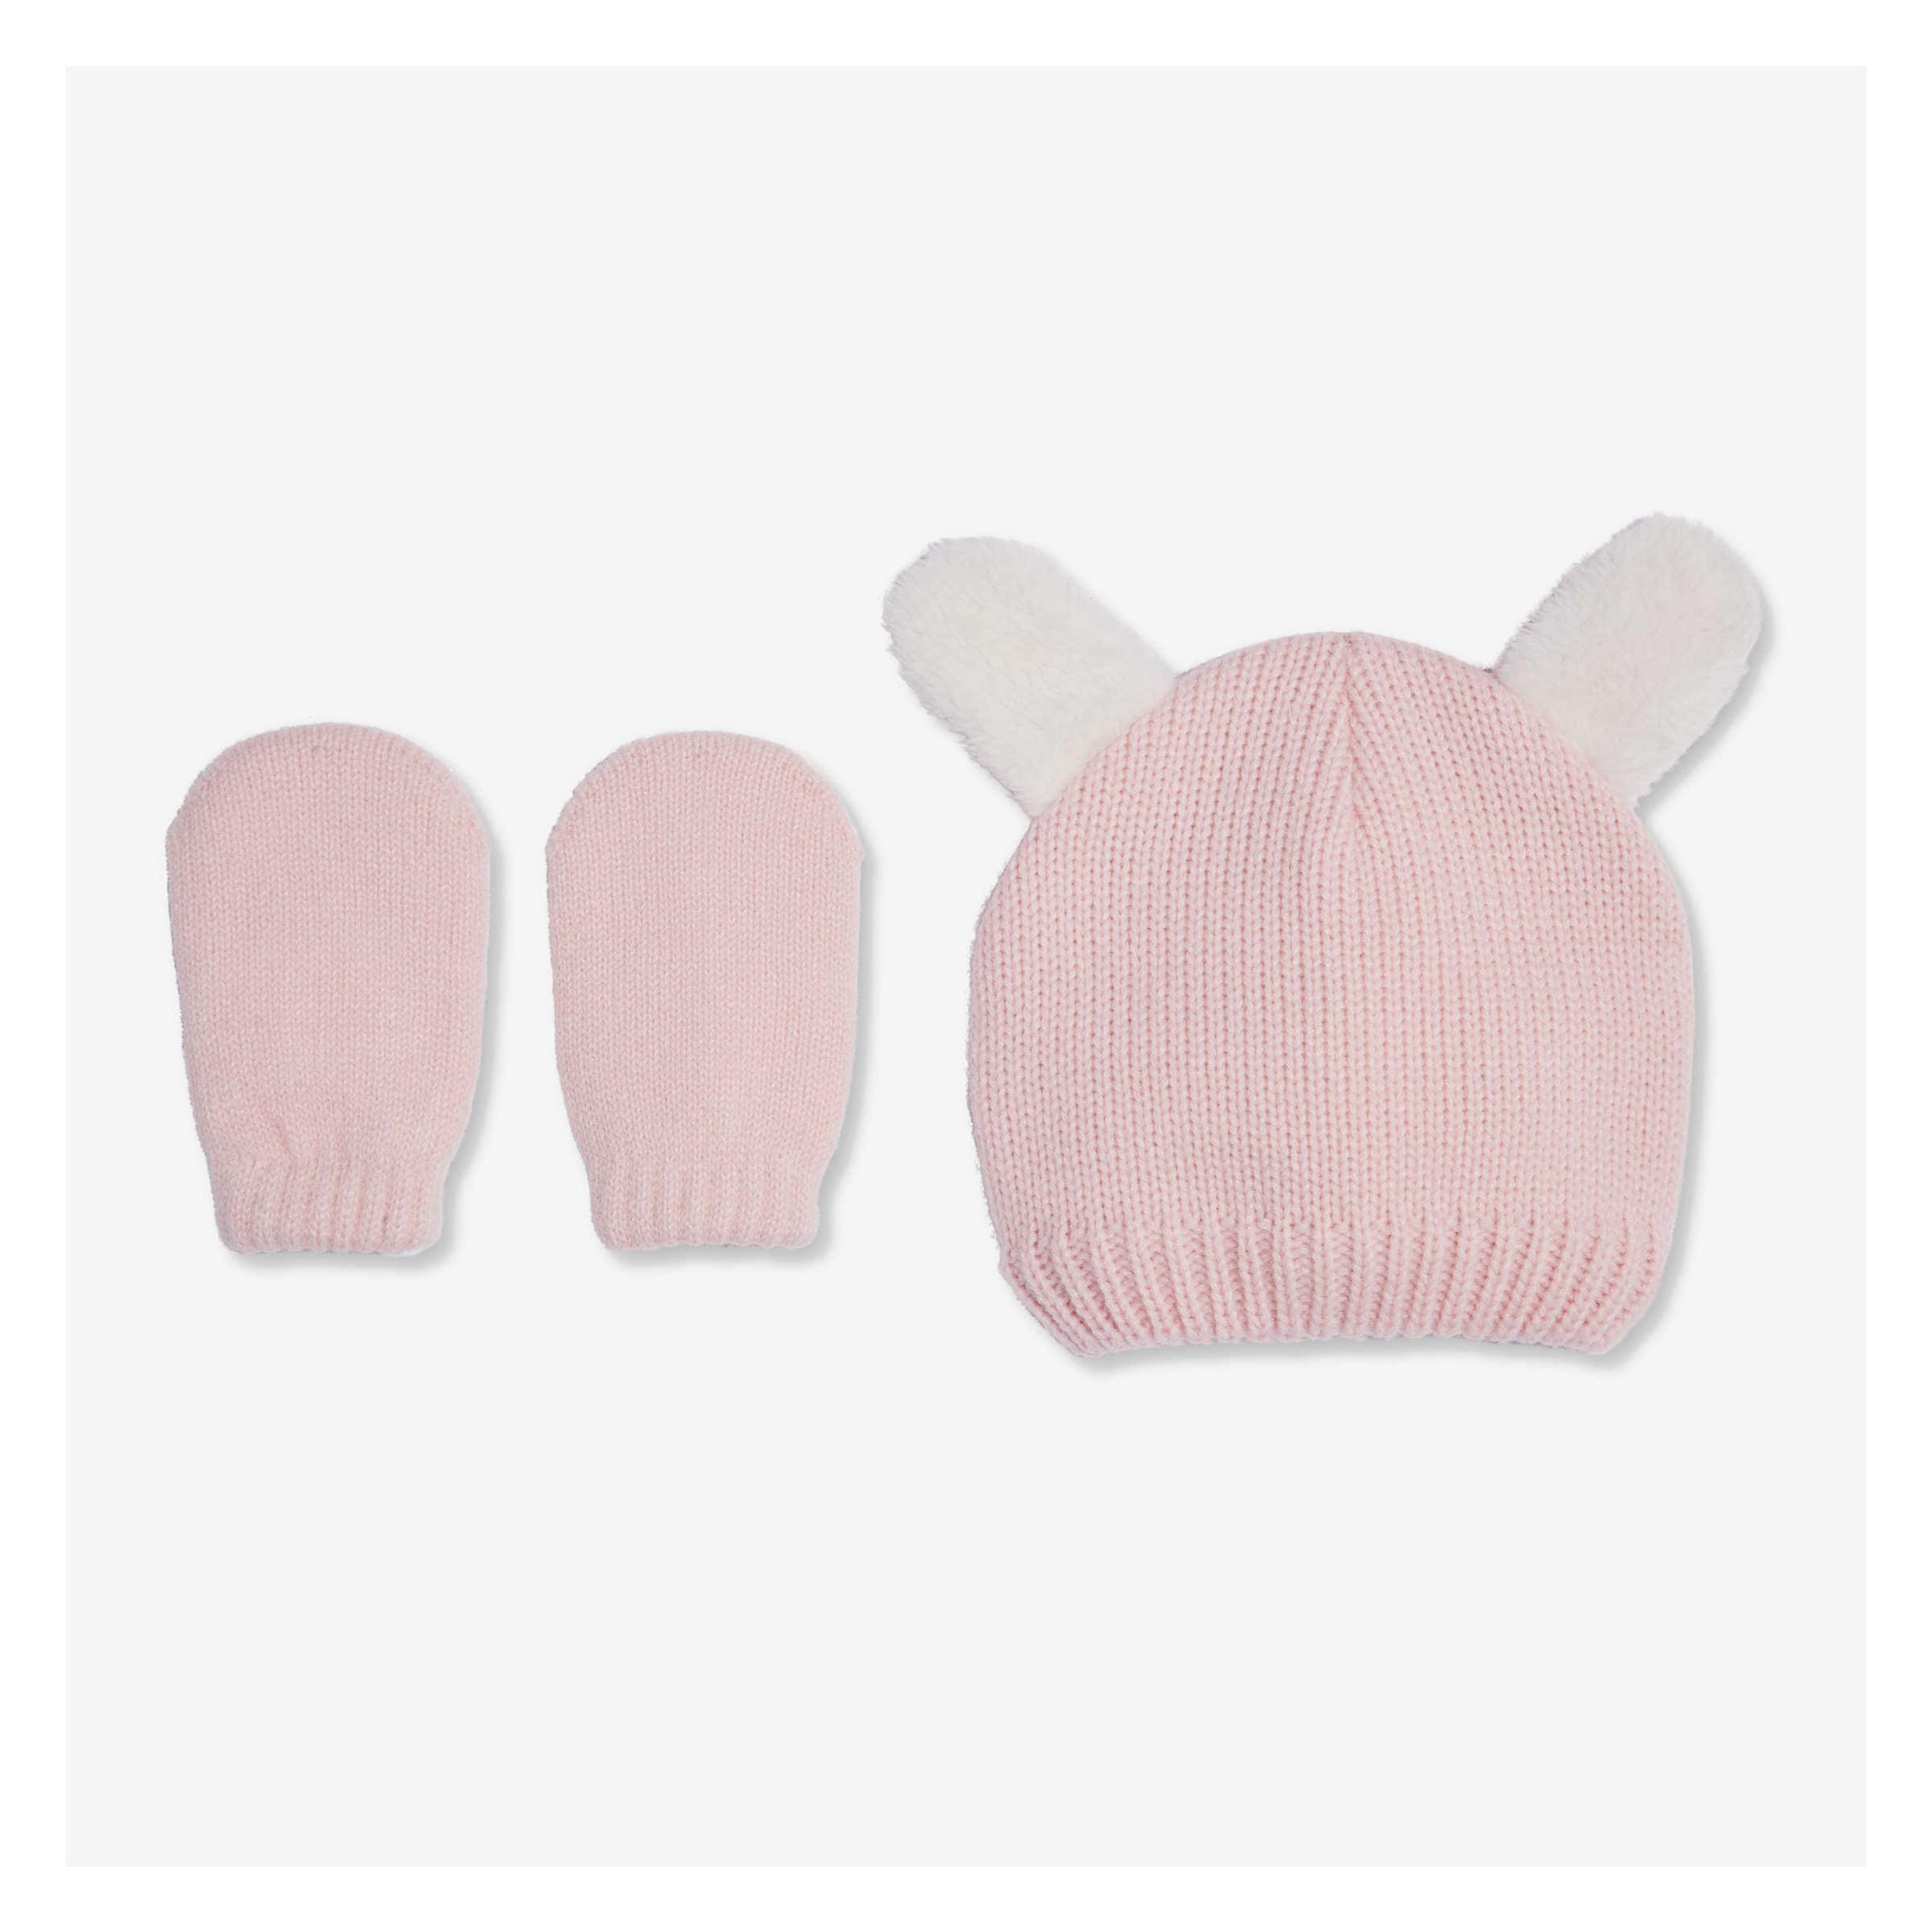 0bed0b2e87a Baby Girls  2 Piece Hat and Mitt Set in Pale Pink from Joe Fresh